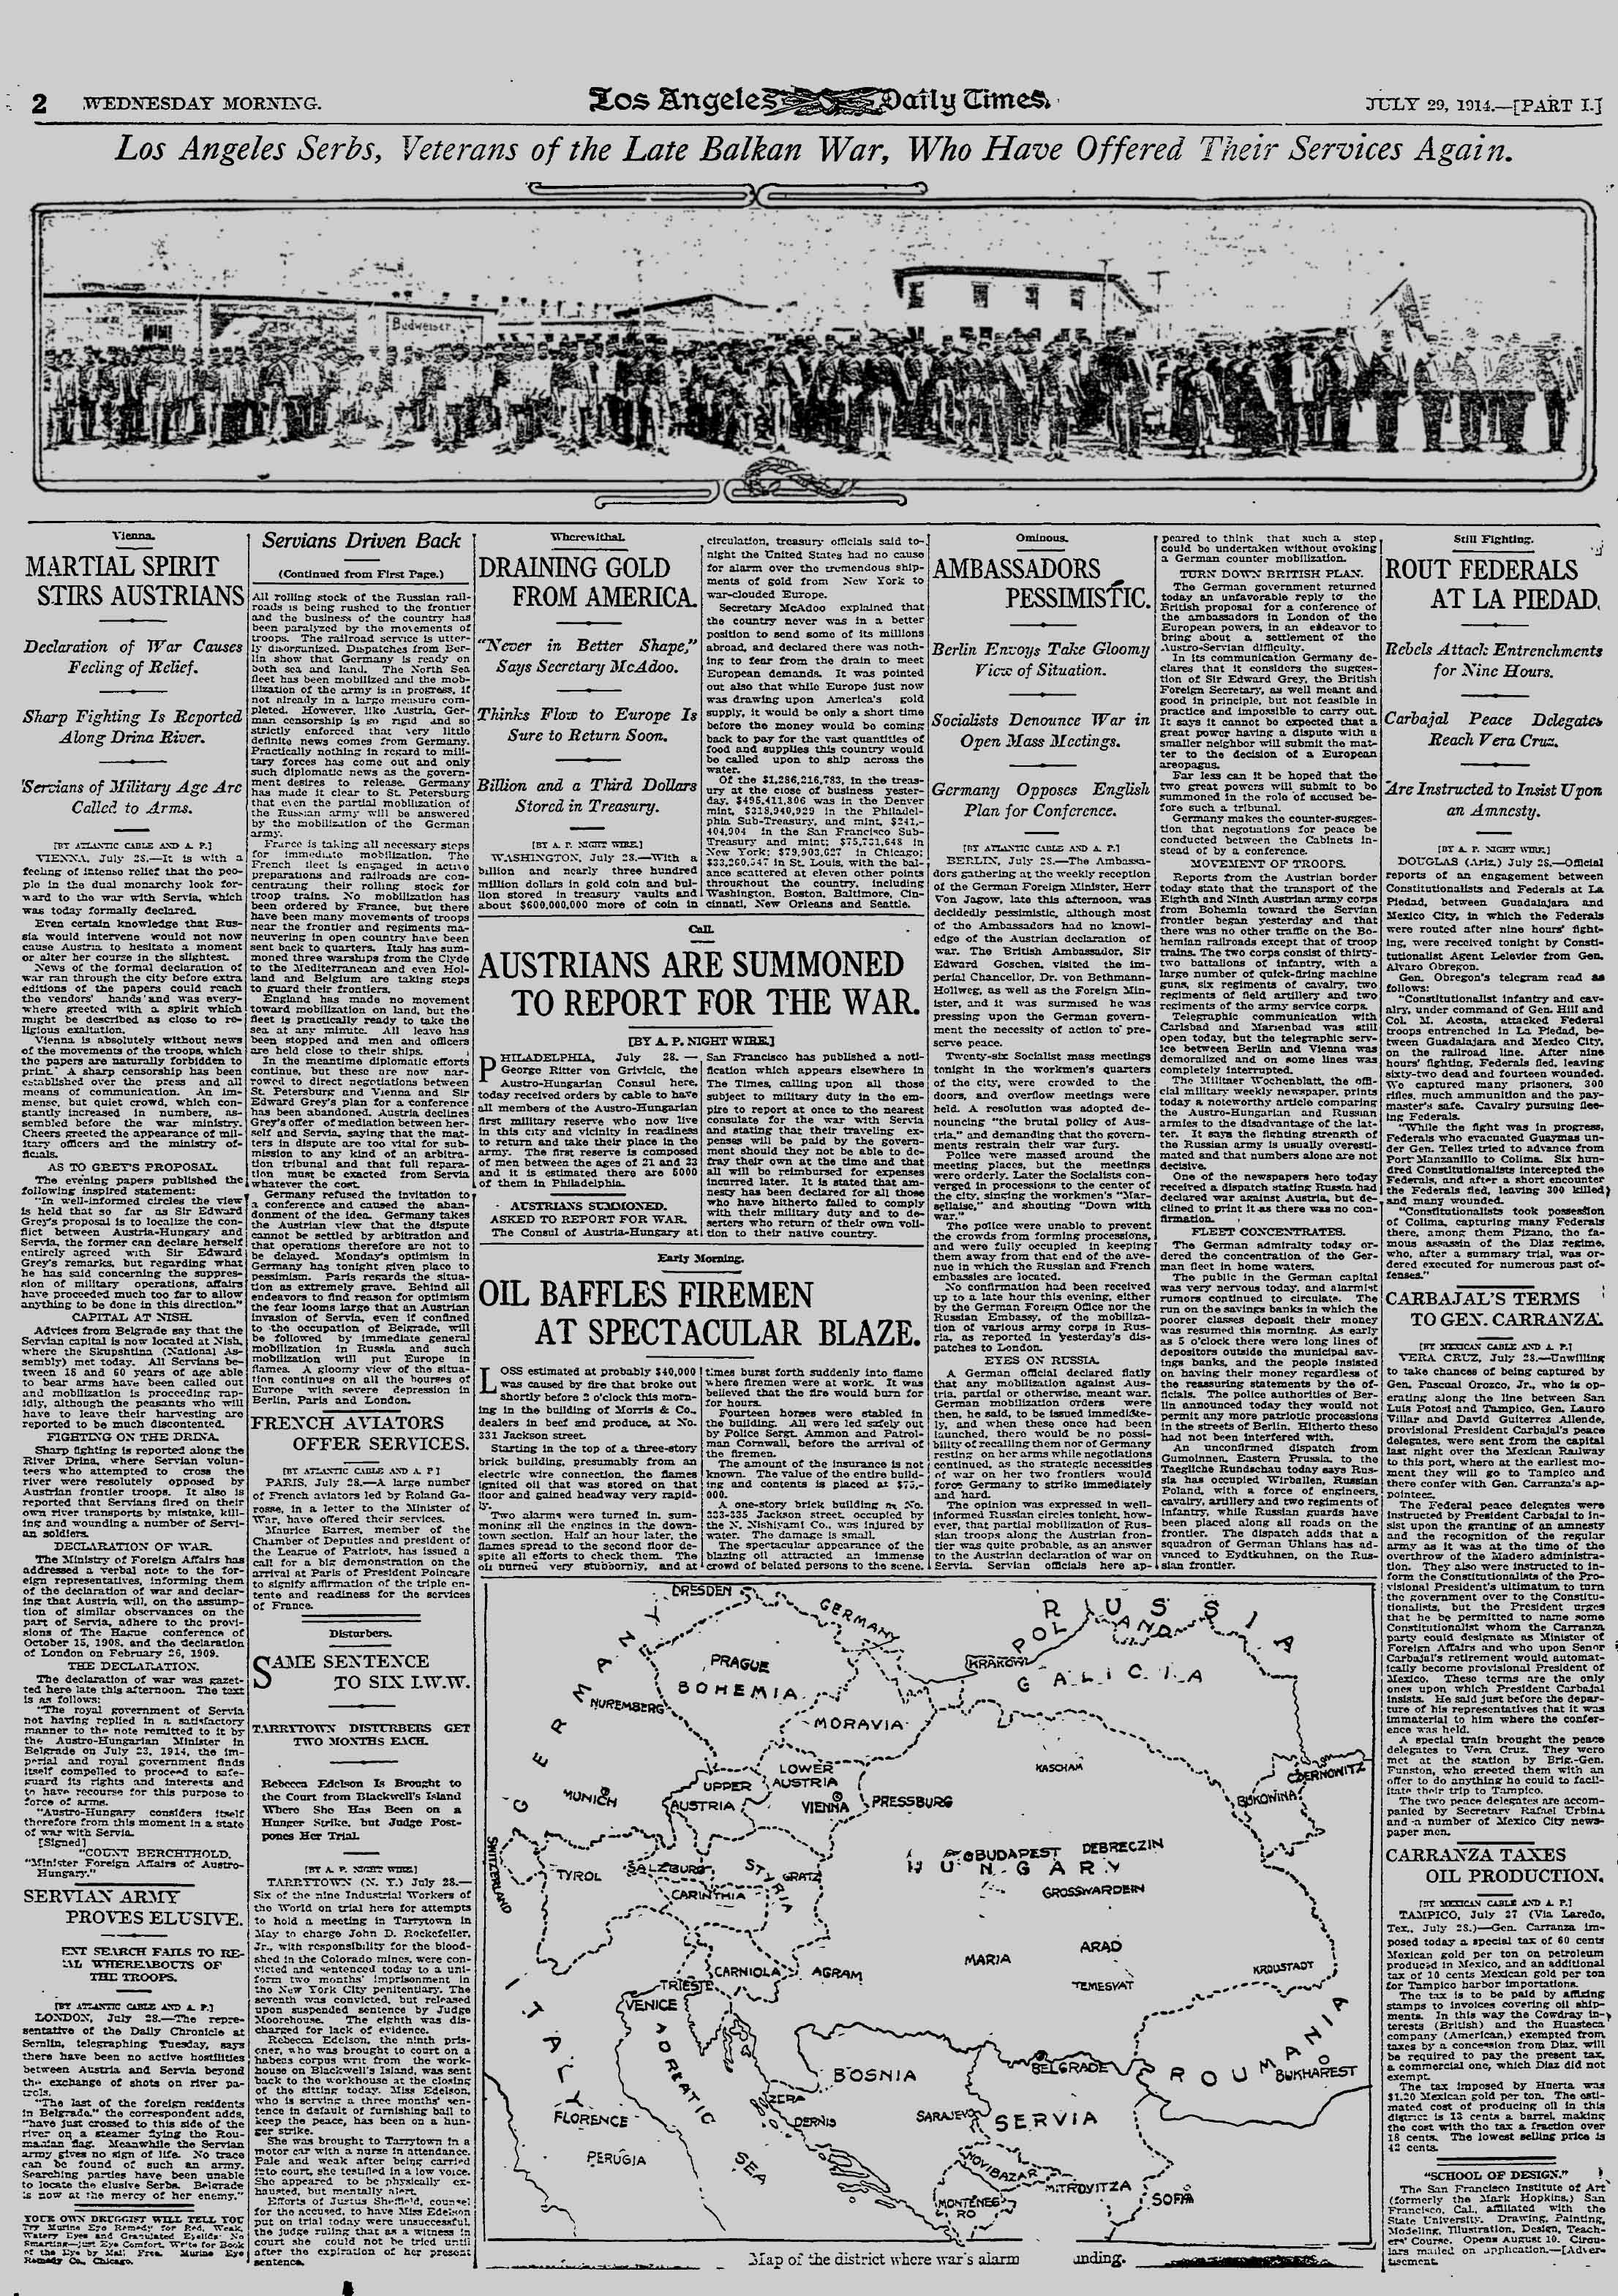 Russia to Invade Austria: July 29, 1914